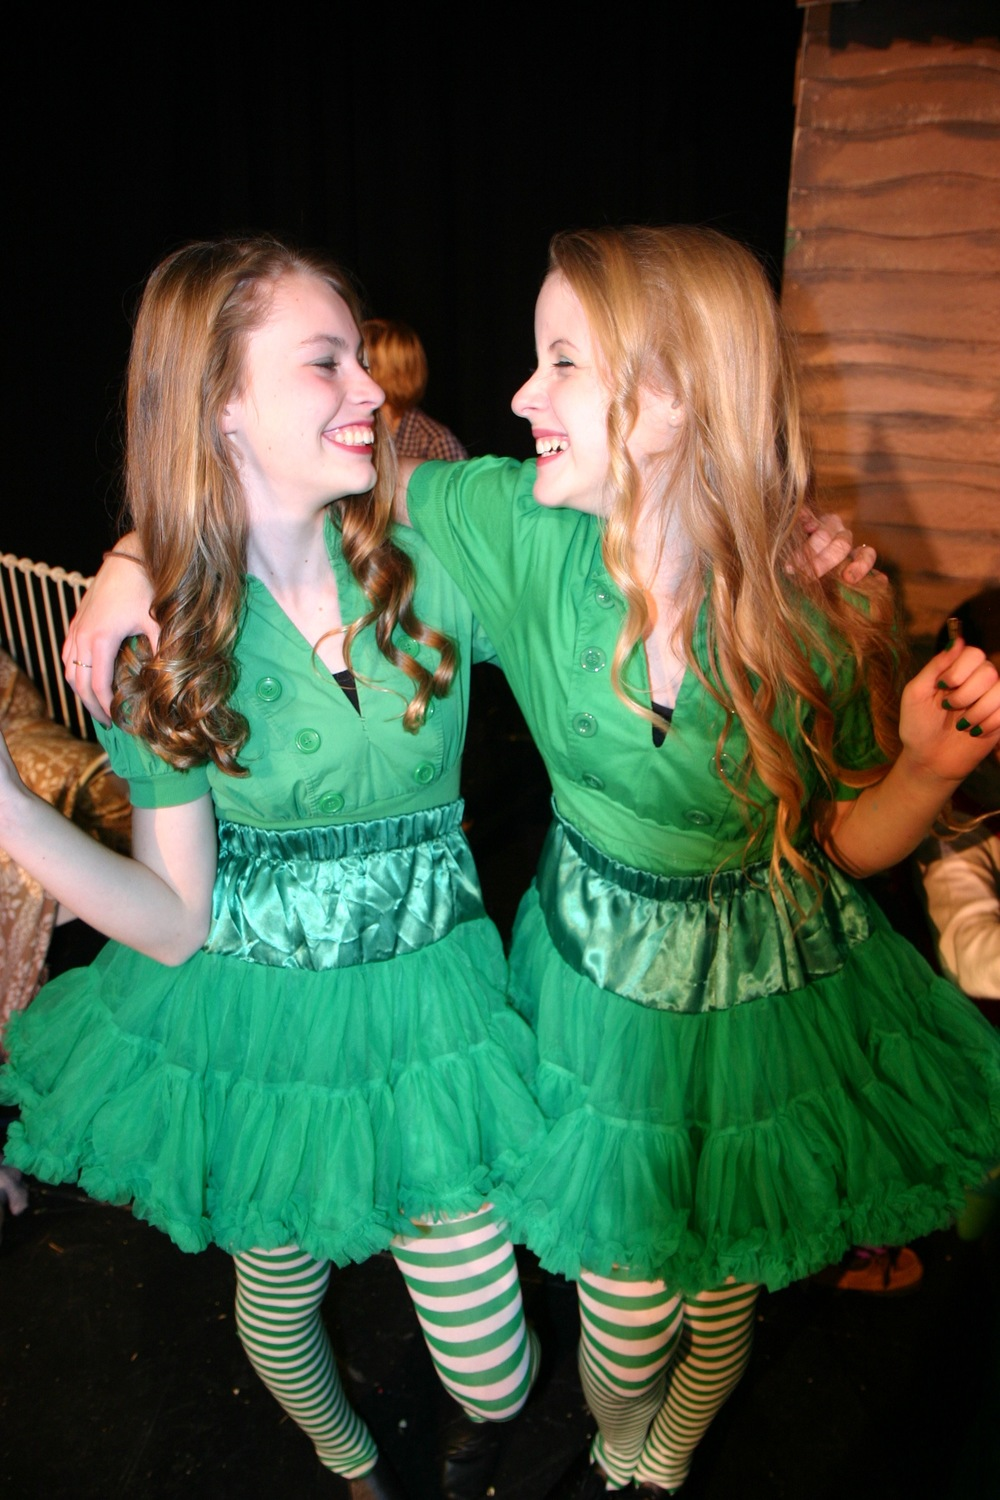 The Emerald City Girls (Emma Chandler and Gigi Cowherd)